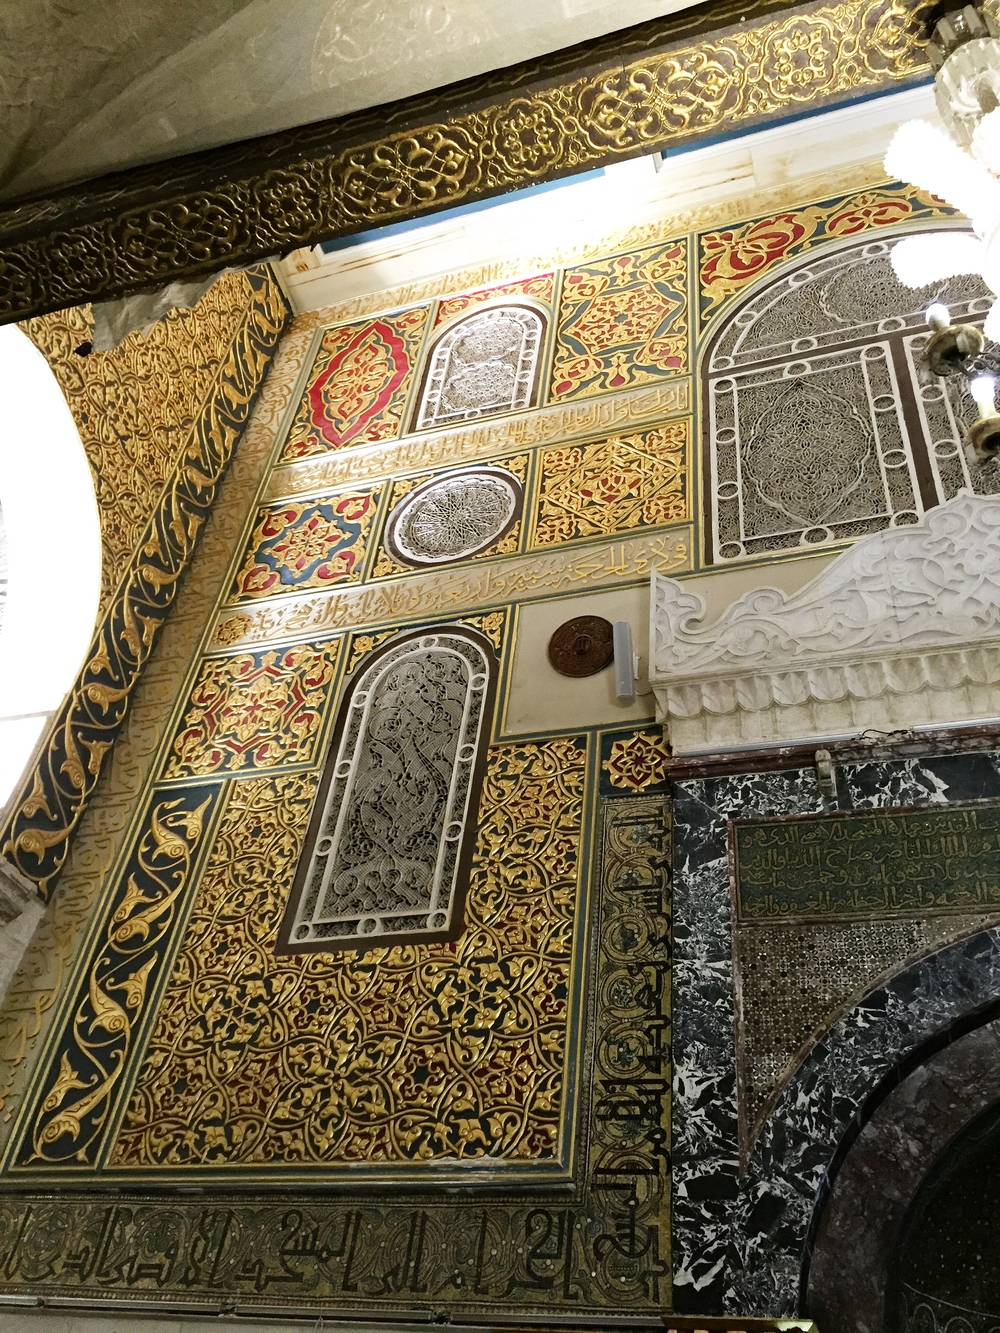 Gilded flourishes on one of the walls of Masjid Al-Aqsa